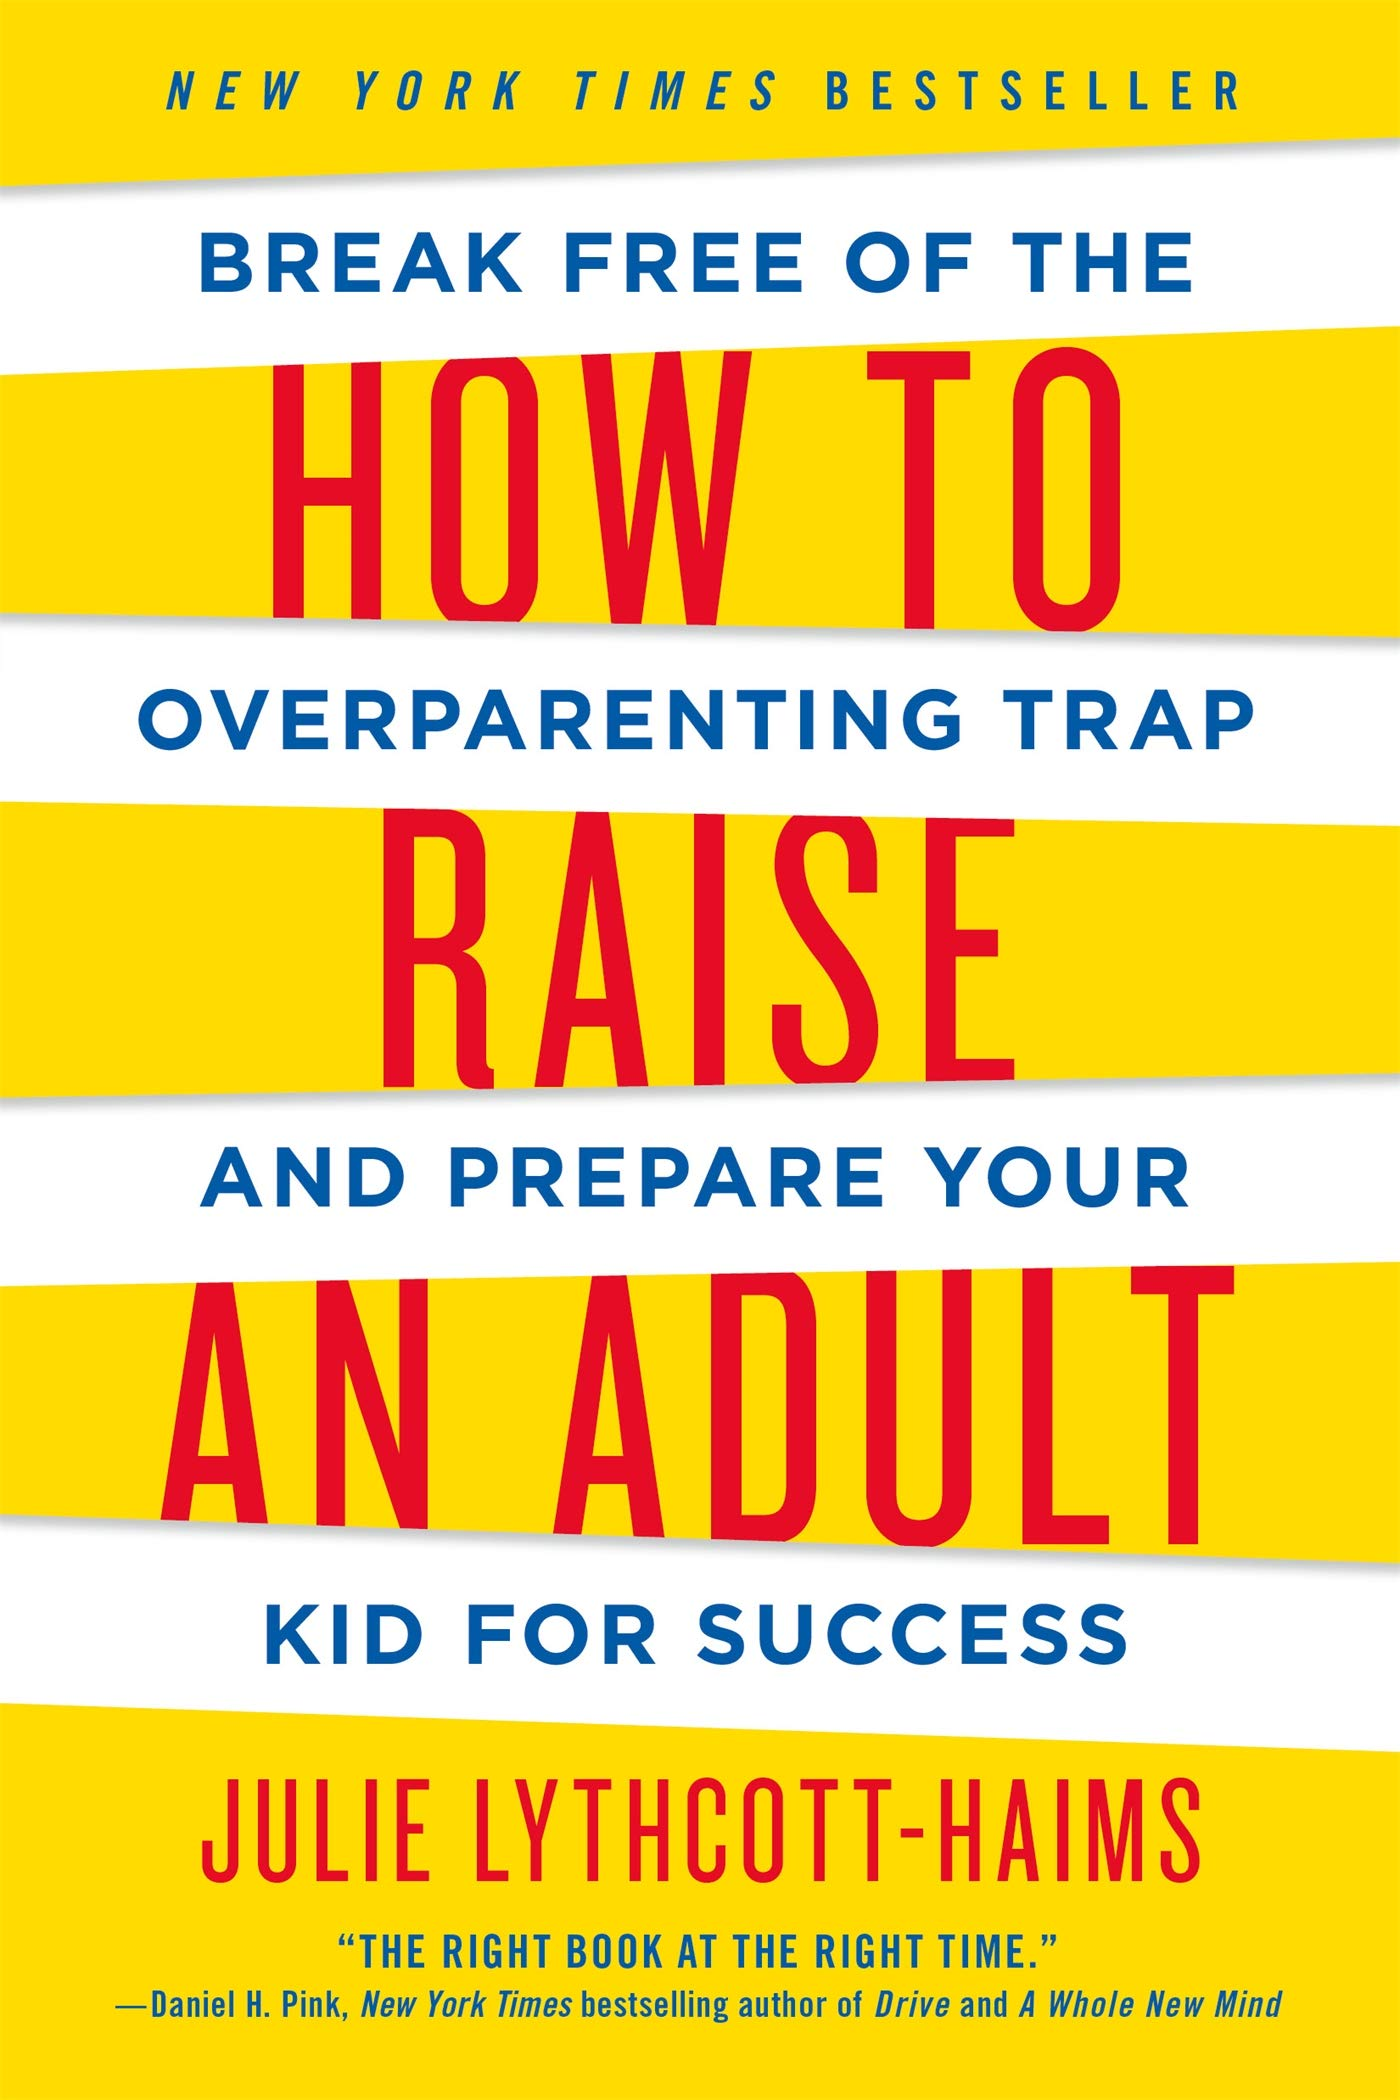 How to Raise an Adult: Break Free of the Overparenting Trap ...